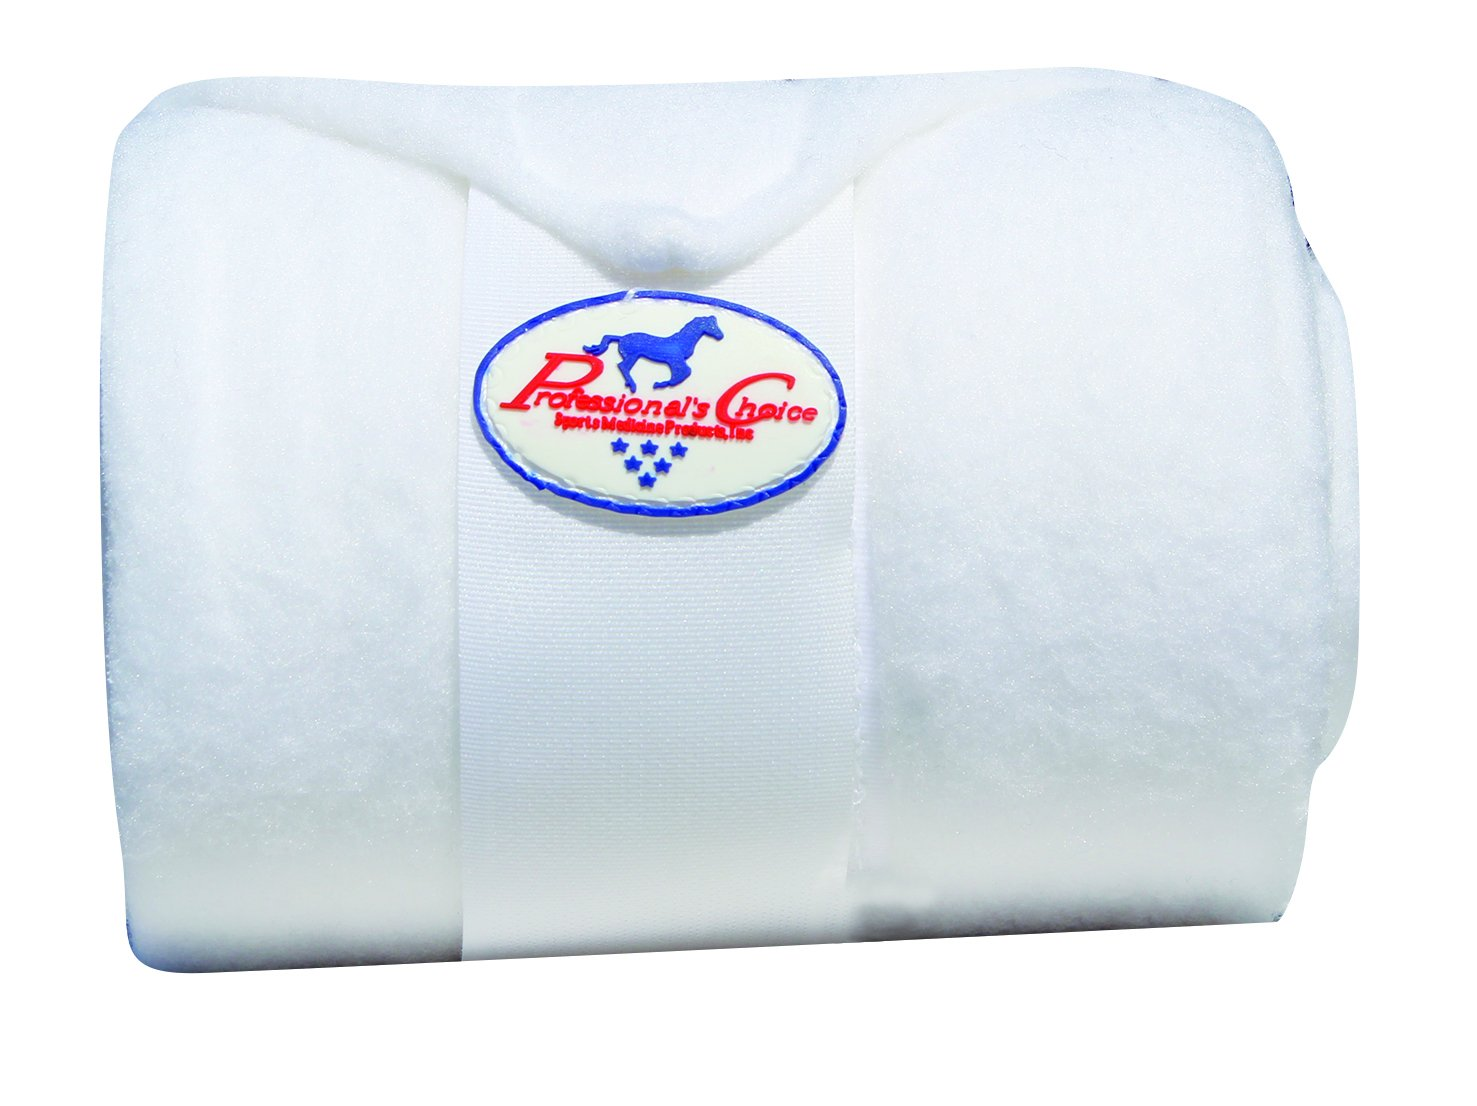 Professional's Choice Polo Wraps White by Professional's Choice